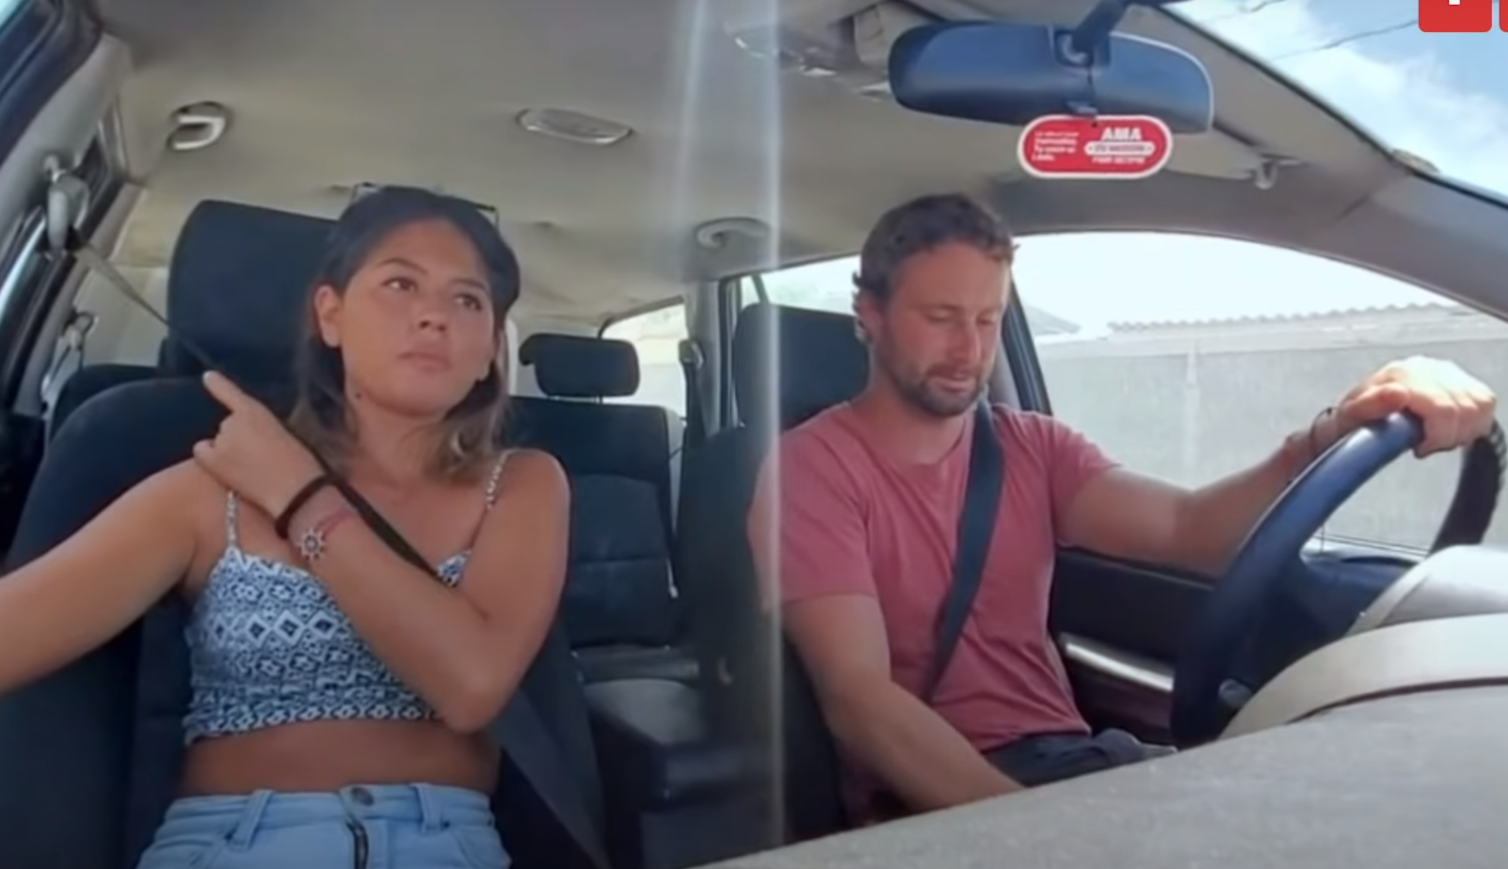 90 Day Fiancé couple Corey and Evelin together in the car, Corey Rathgeber is driving